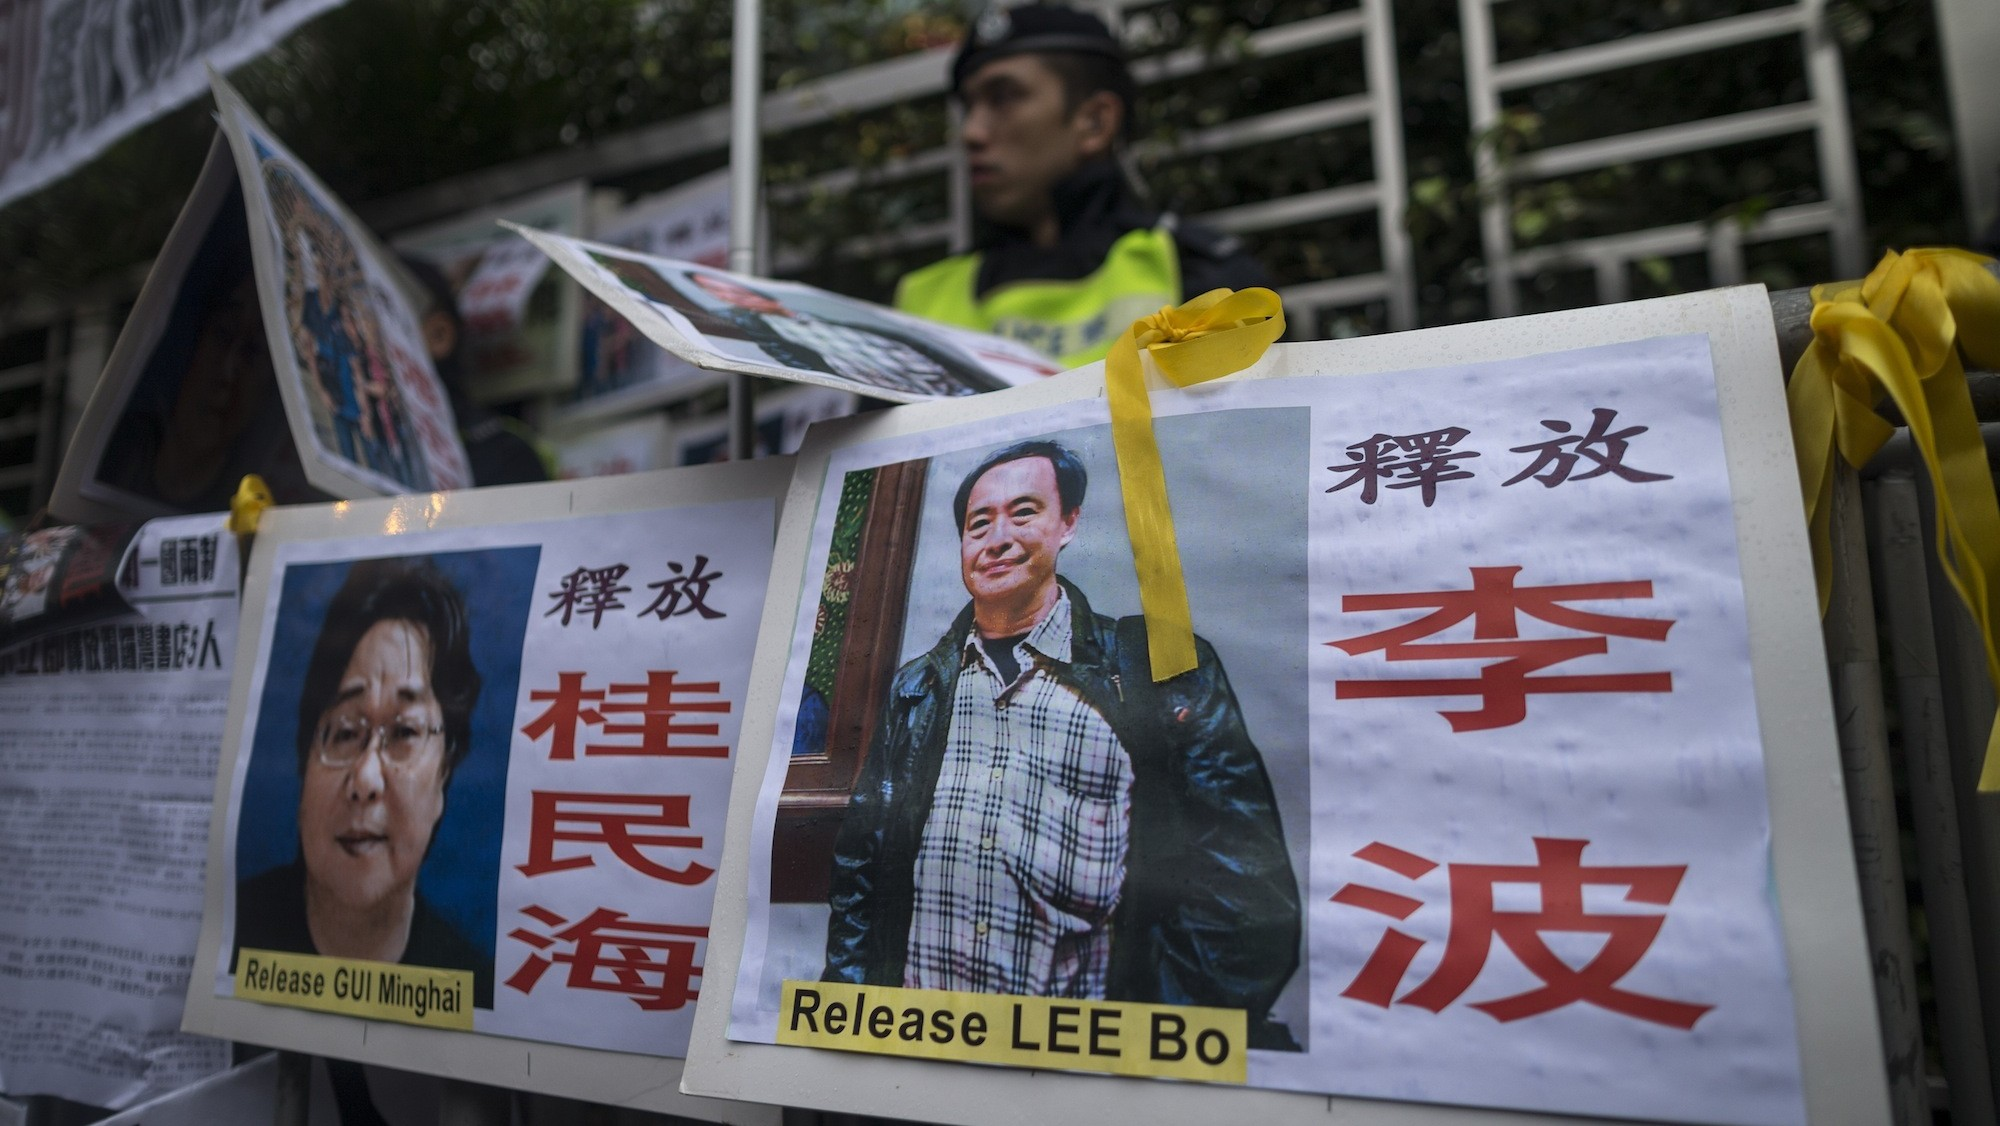 Missing Hong Kong Bookseller's Wife Says He's in China to Help With 'Investigation'